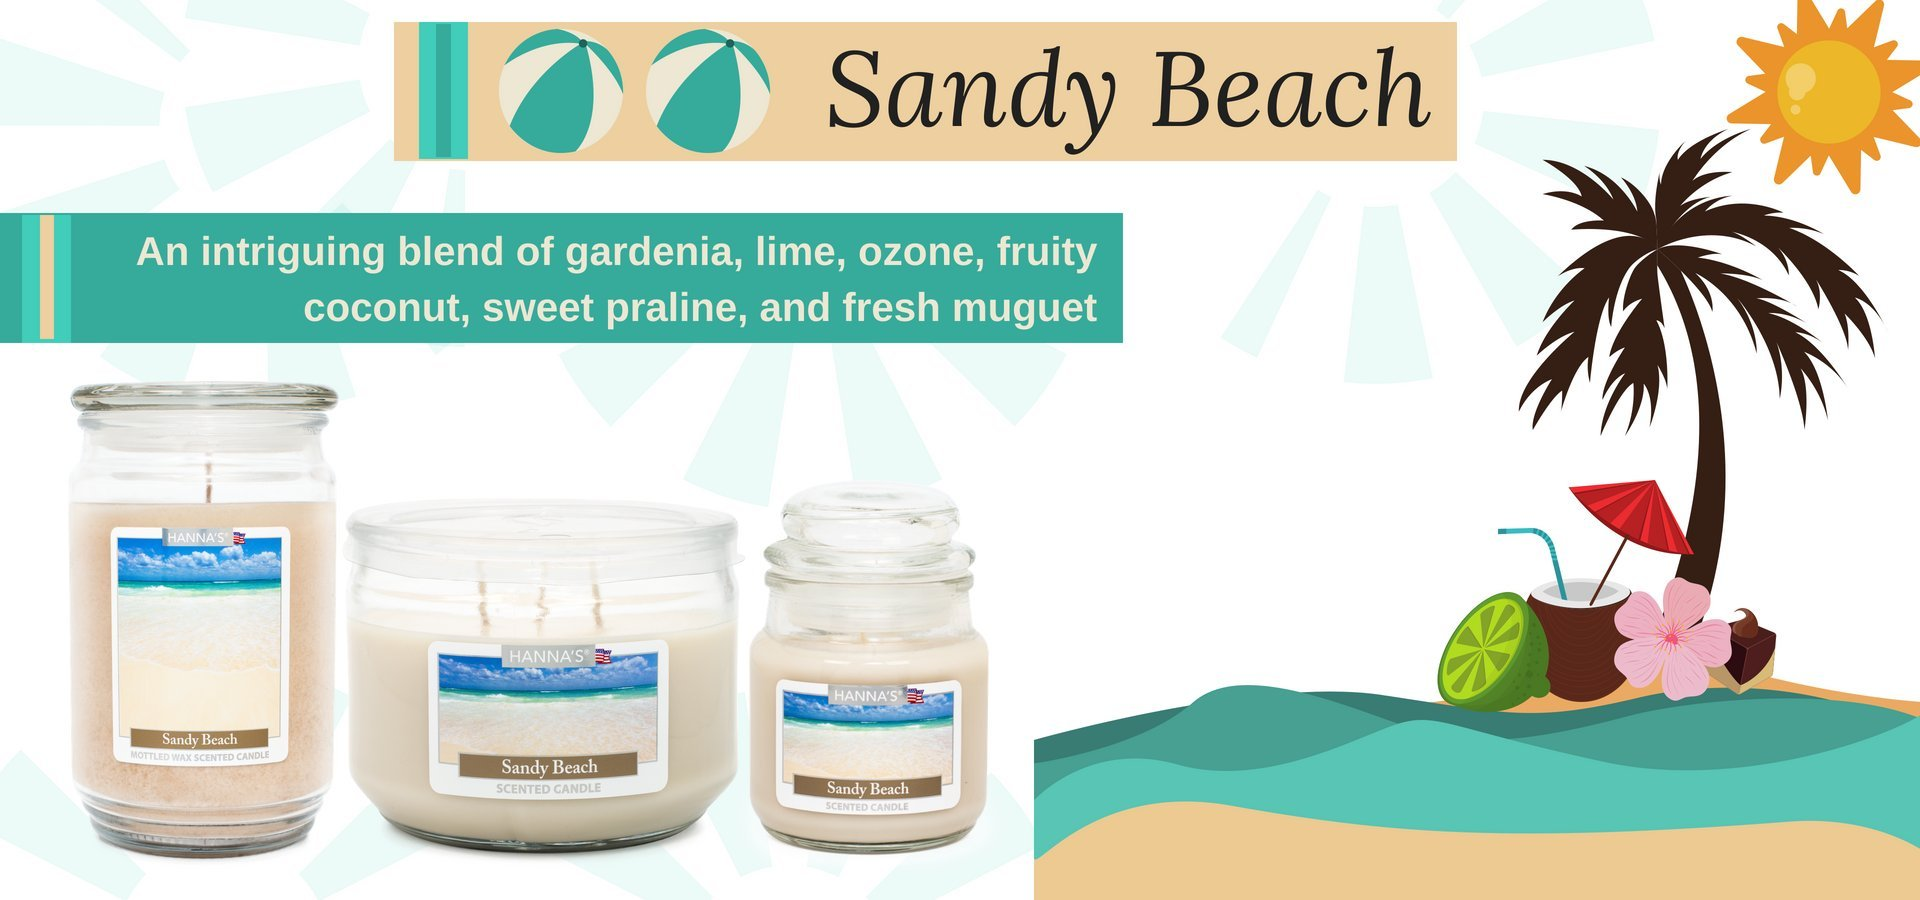 hawaiian delight candles and melts on sale